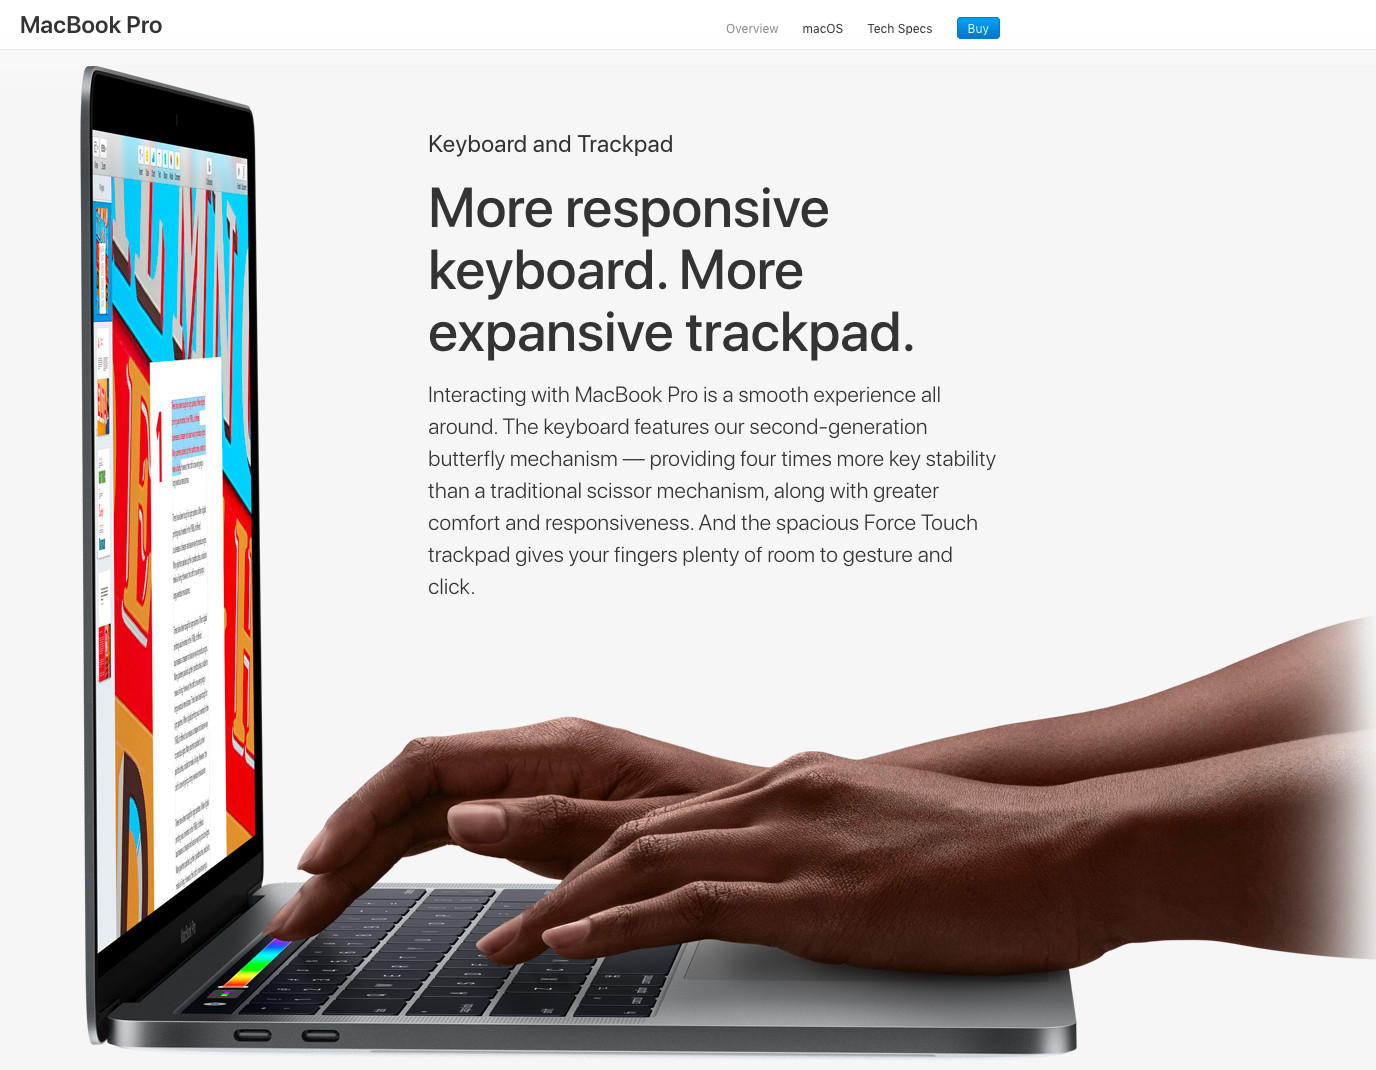 Last year on its website, Apple talked up the butterfly mechanism.